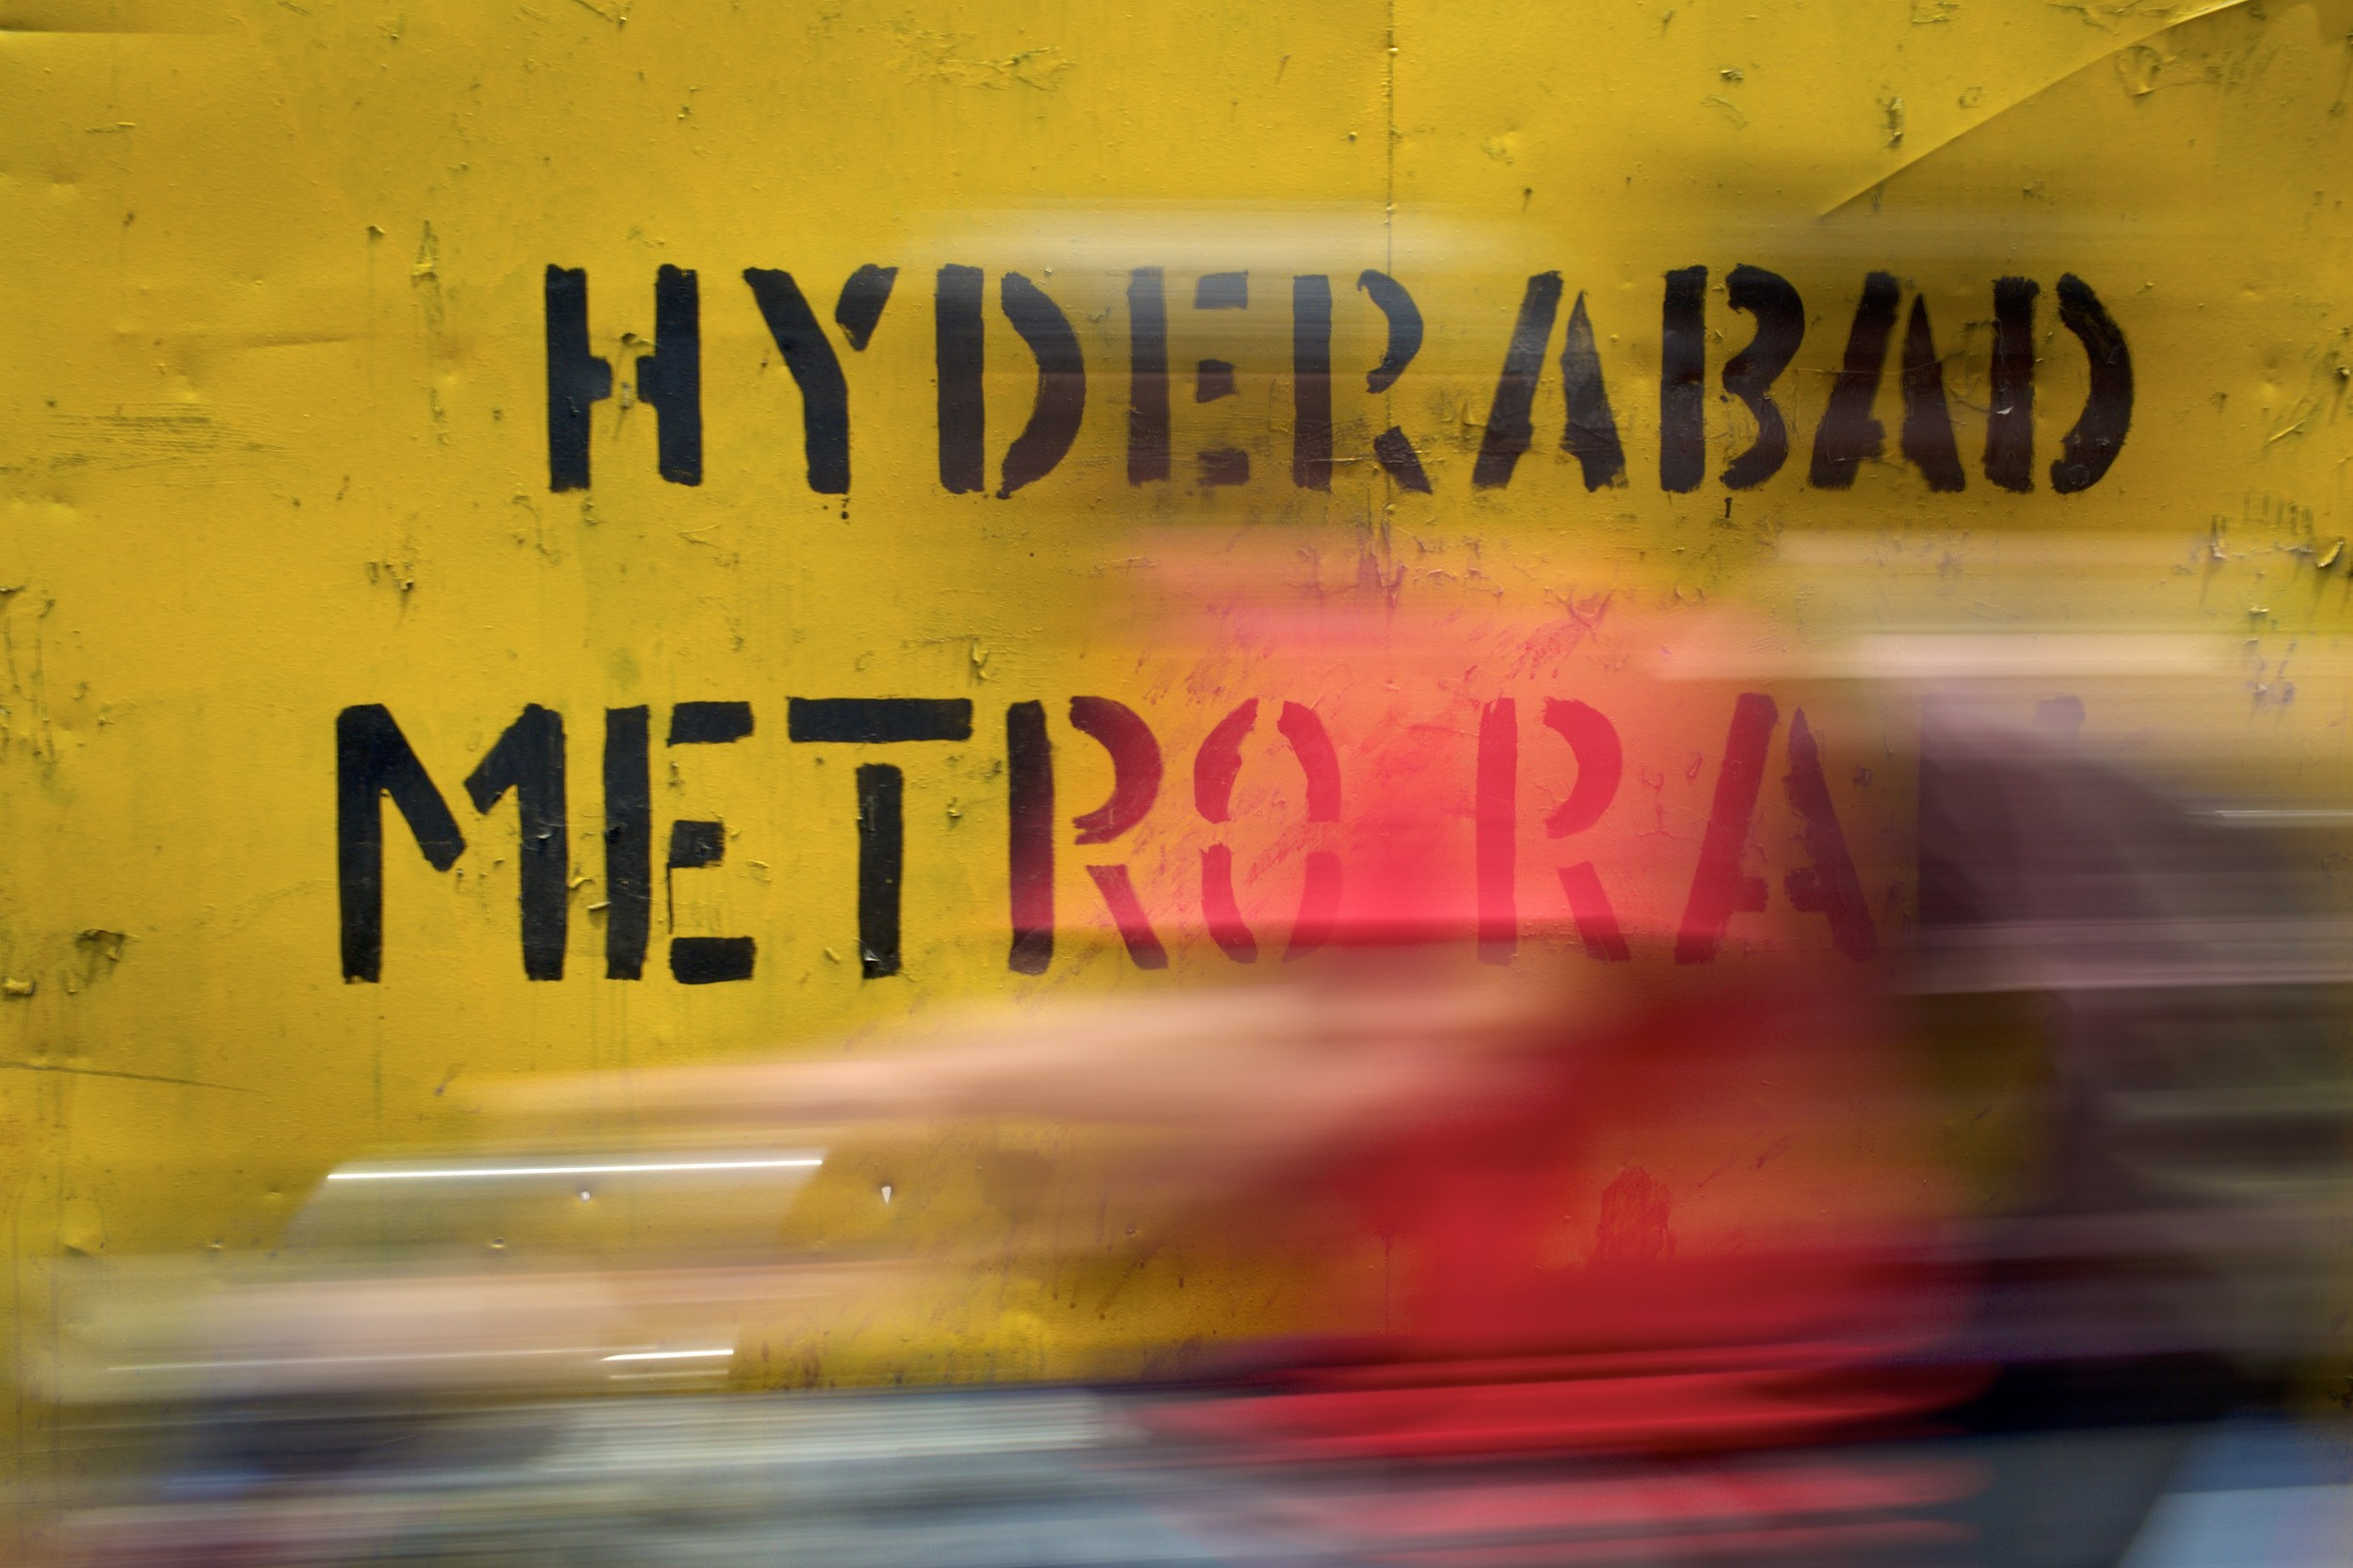 Hyderabad Metro, currently getting built